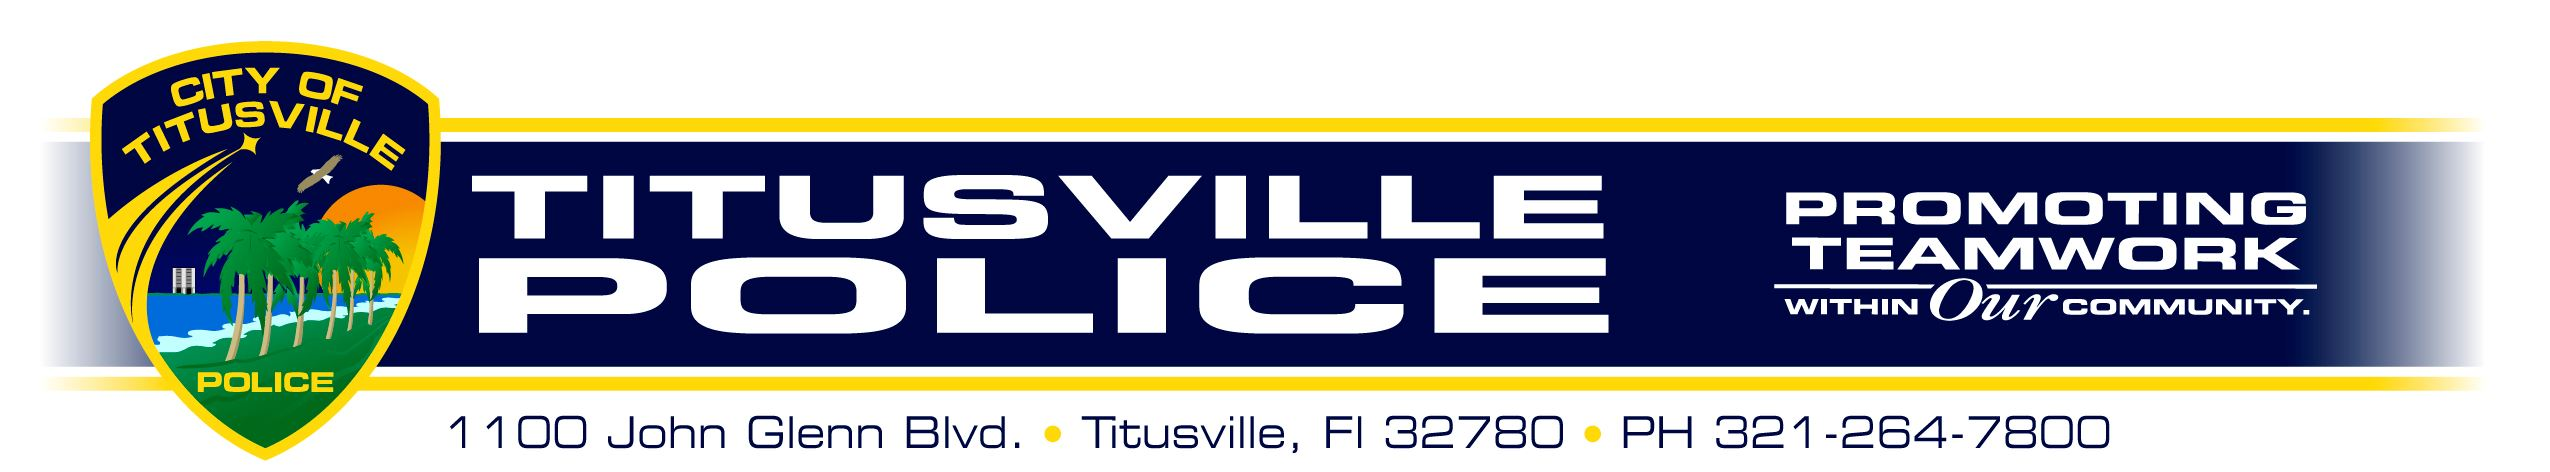 Titusville Police Promoting Teamwork Within Our Community. 1100 John Glenn Blvd. Titusville, FL 32780. 321-264-7800.